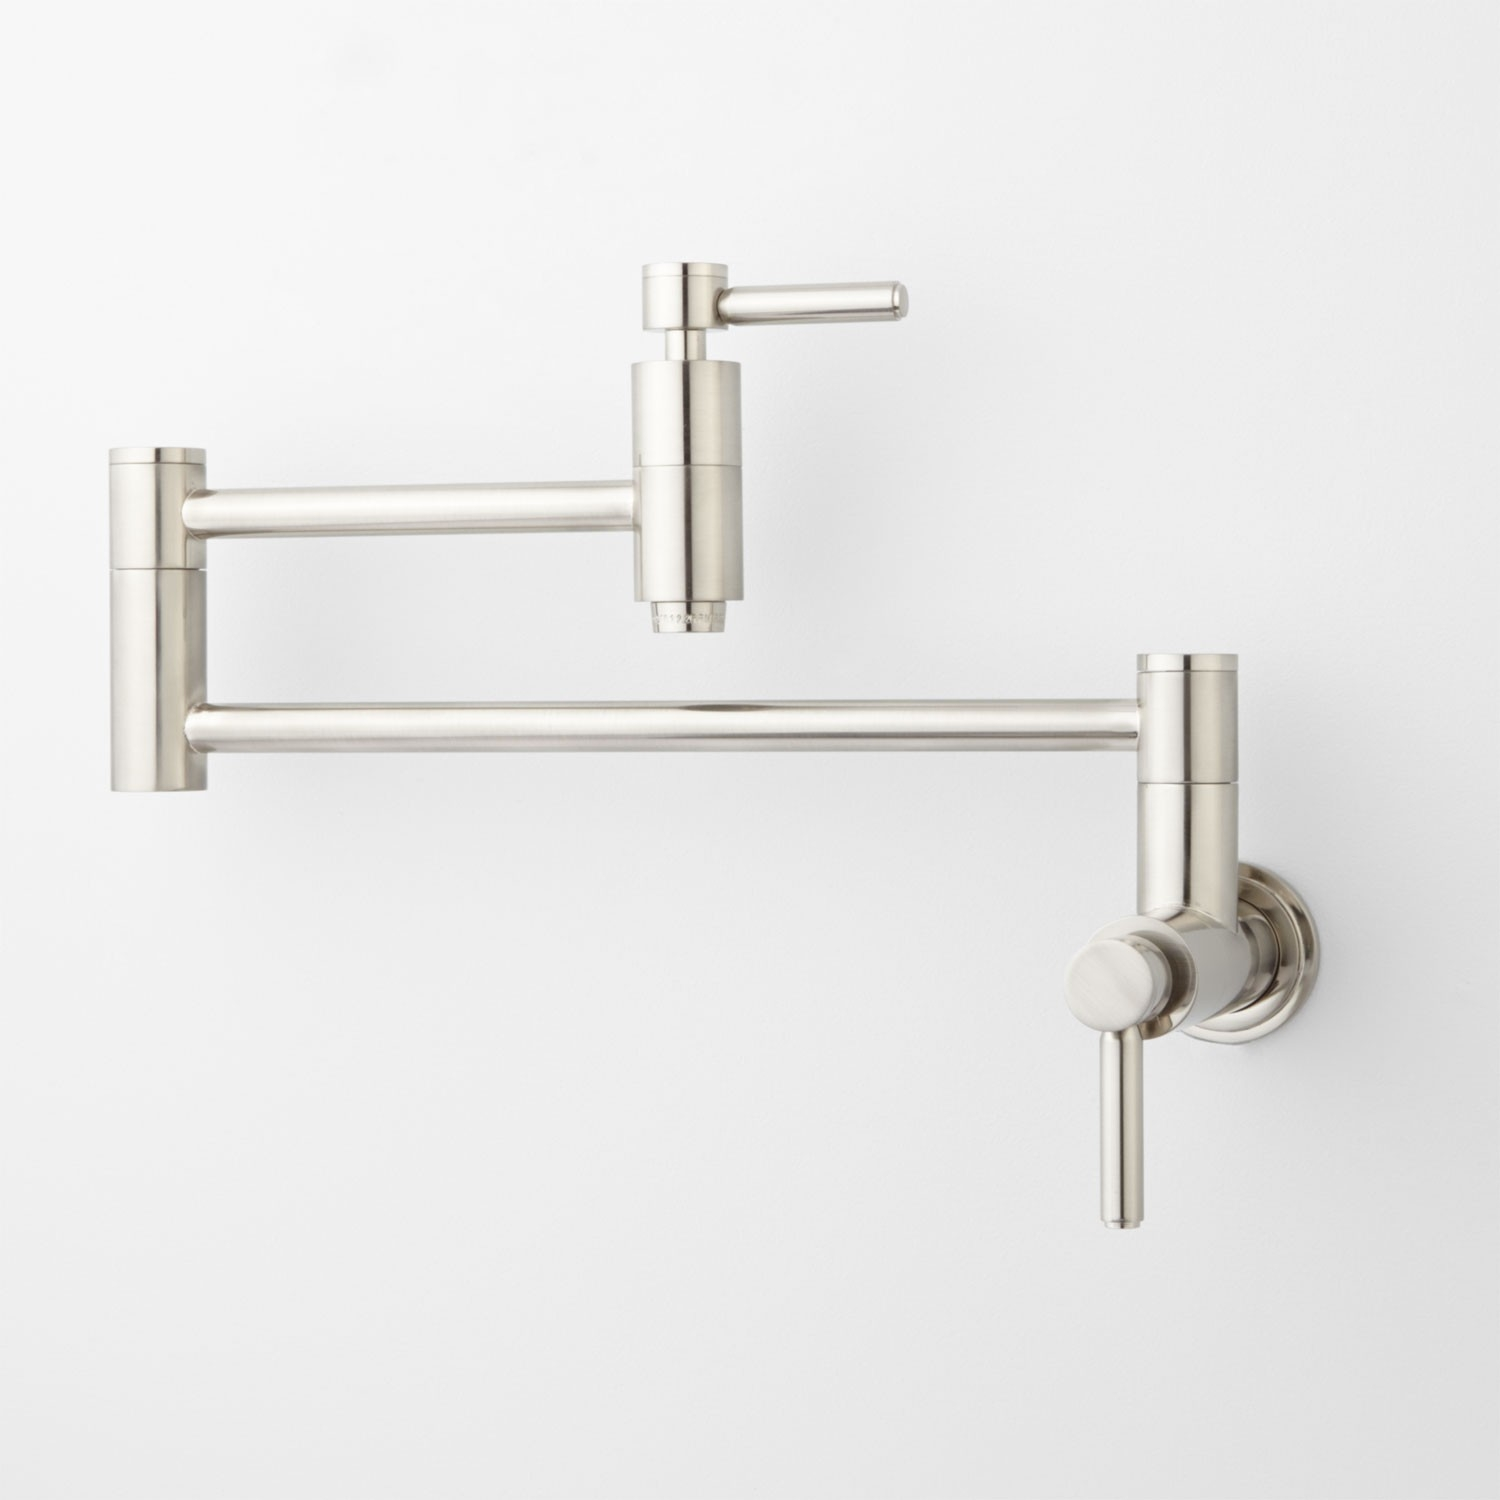 Ideas, satin nickel pot filler faucet satin nickel pot filler faucet contemporary retractable wall mount pot filler faucet kitchen 1500 x 1500  .